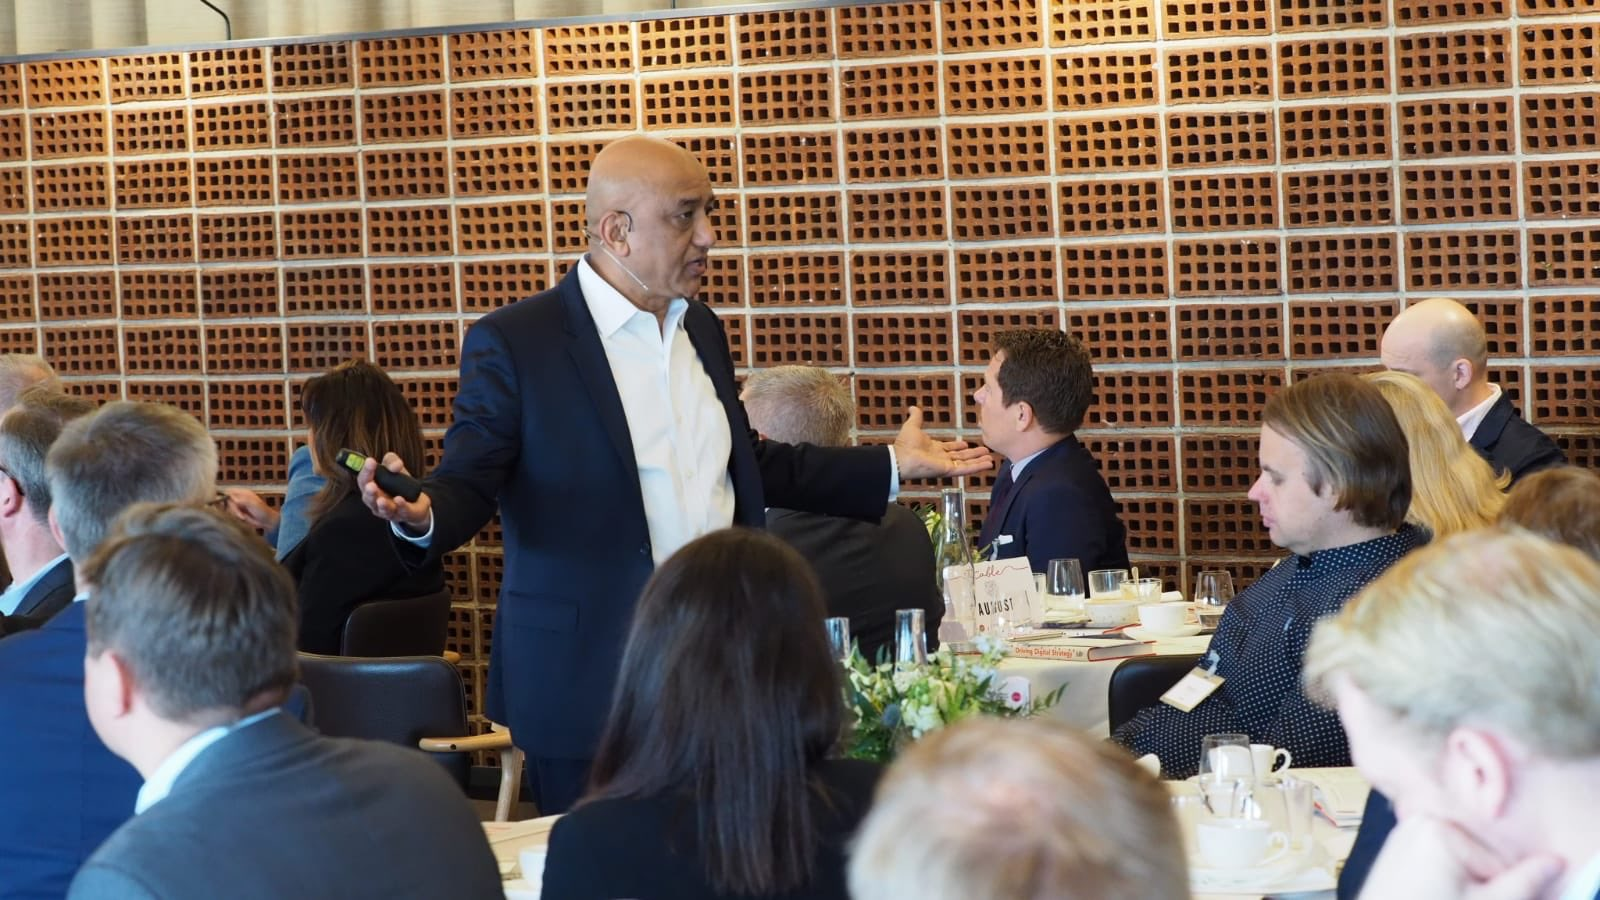 HBR staff collaborate with attendees in a luncheon